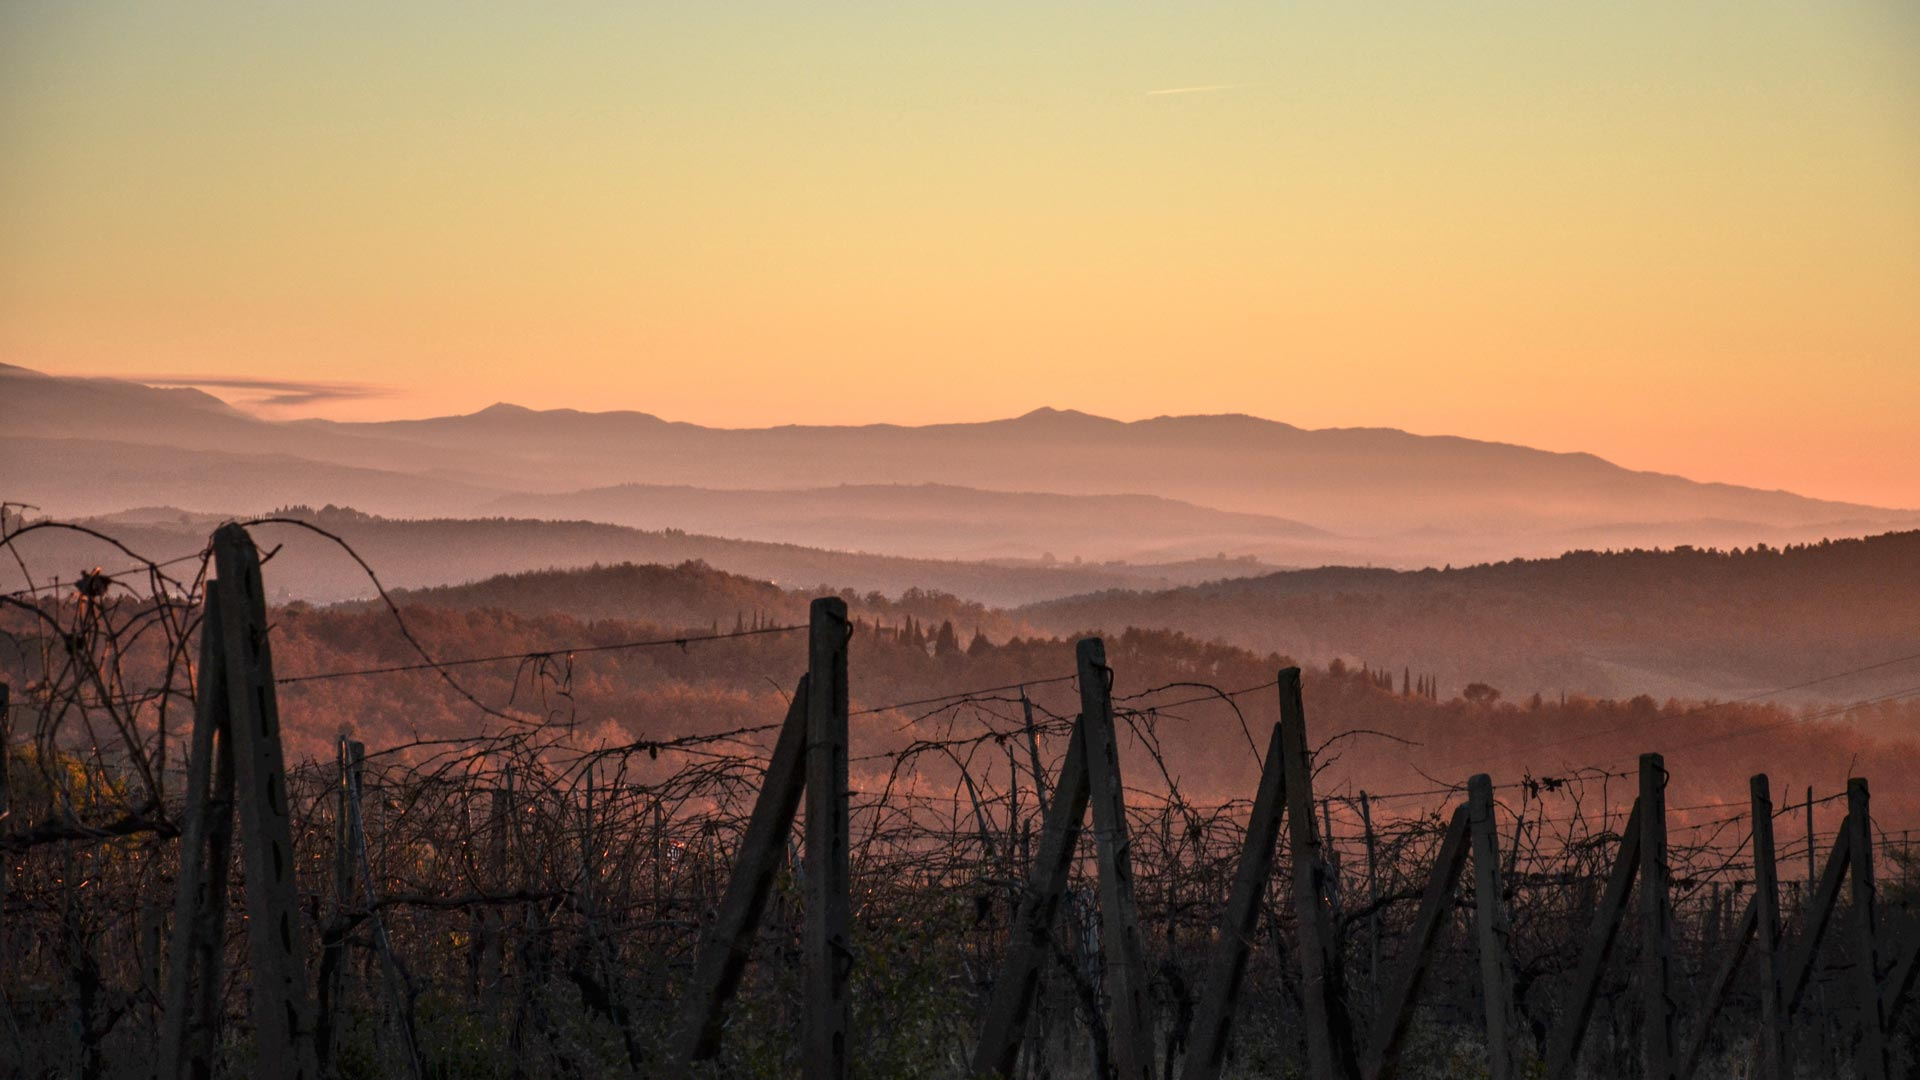 Copy of Sunset settles over our vineyards